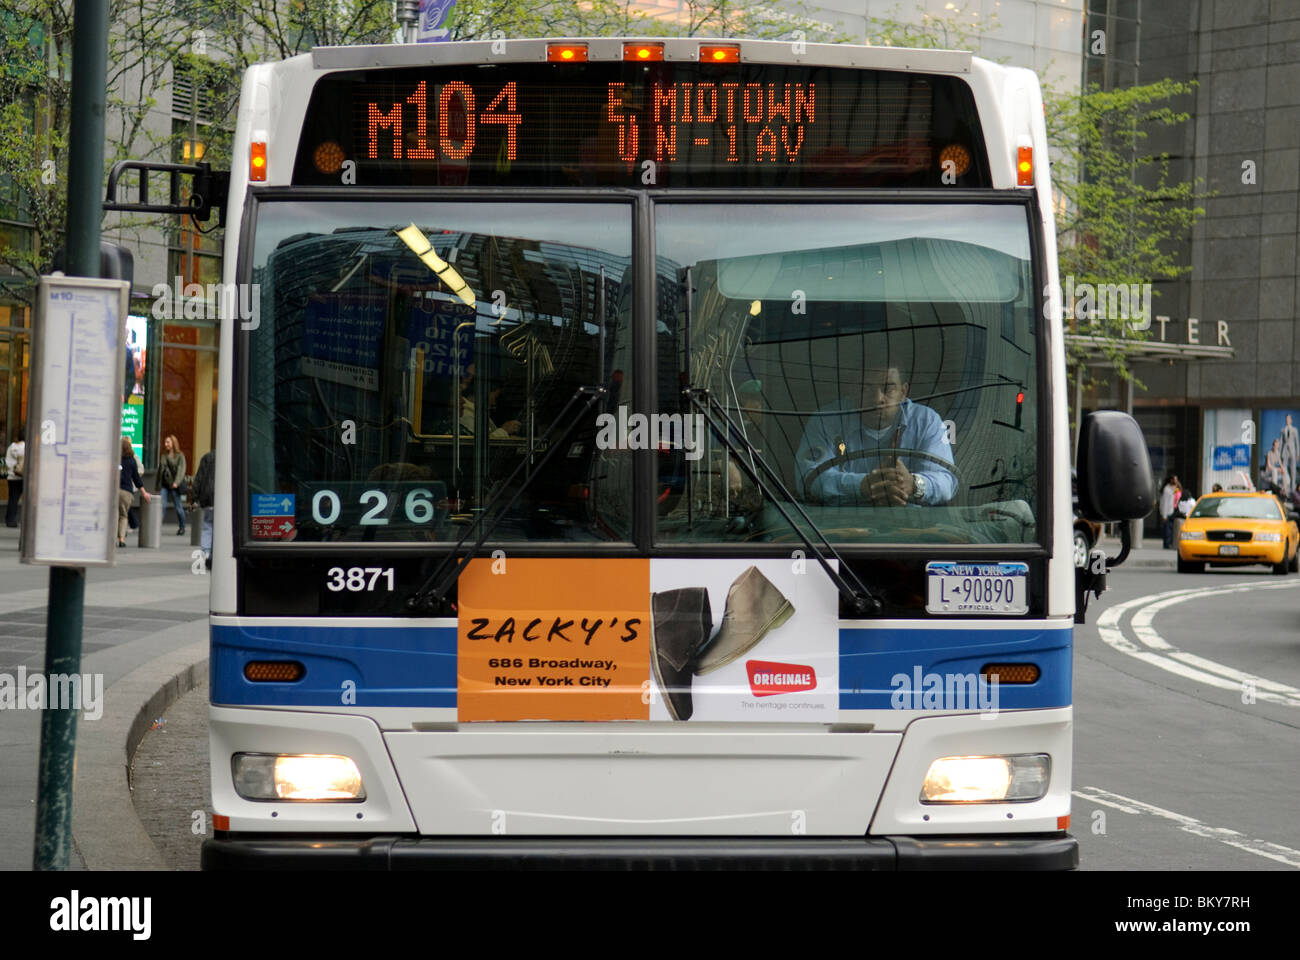 Mta Public Bus Stock Photos & Mta Public Bus Stock Images ... on nyc mta bus routes map, m101 bus map, west side idaho map, m104 bus map nyc, m15 new york map, 83 street 2 nd avenue new york map, m22 nyc bus map, m20 bus map, queens bus map,